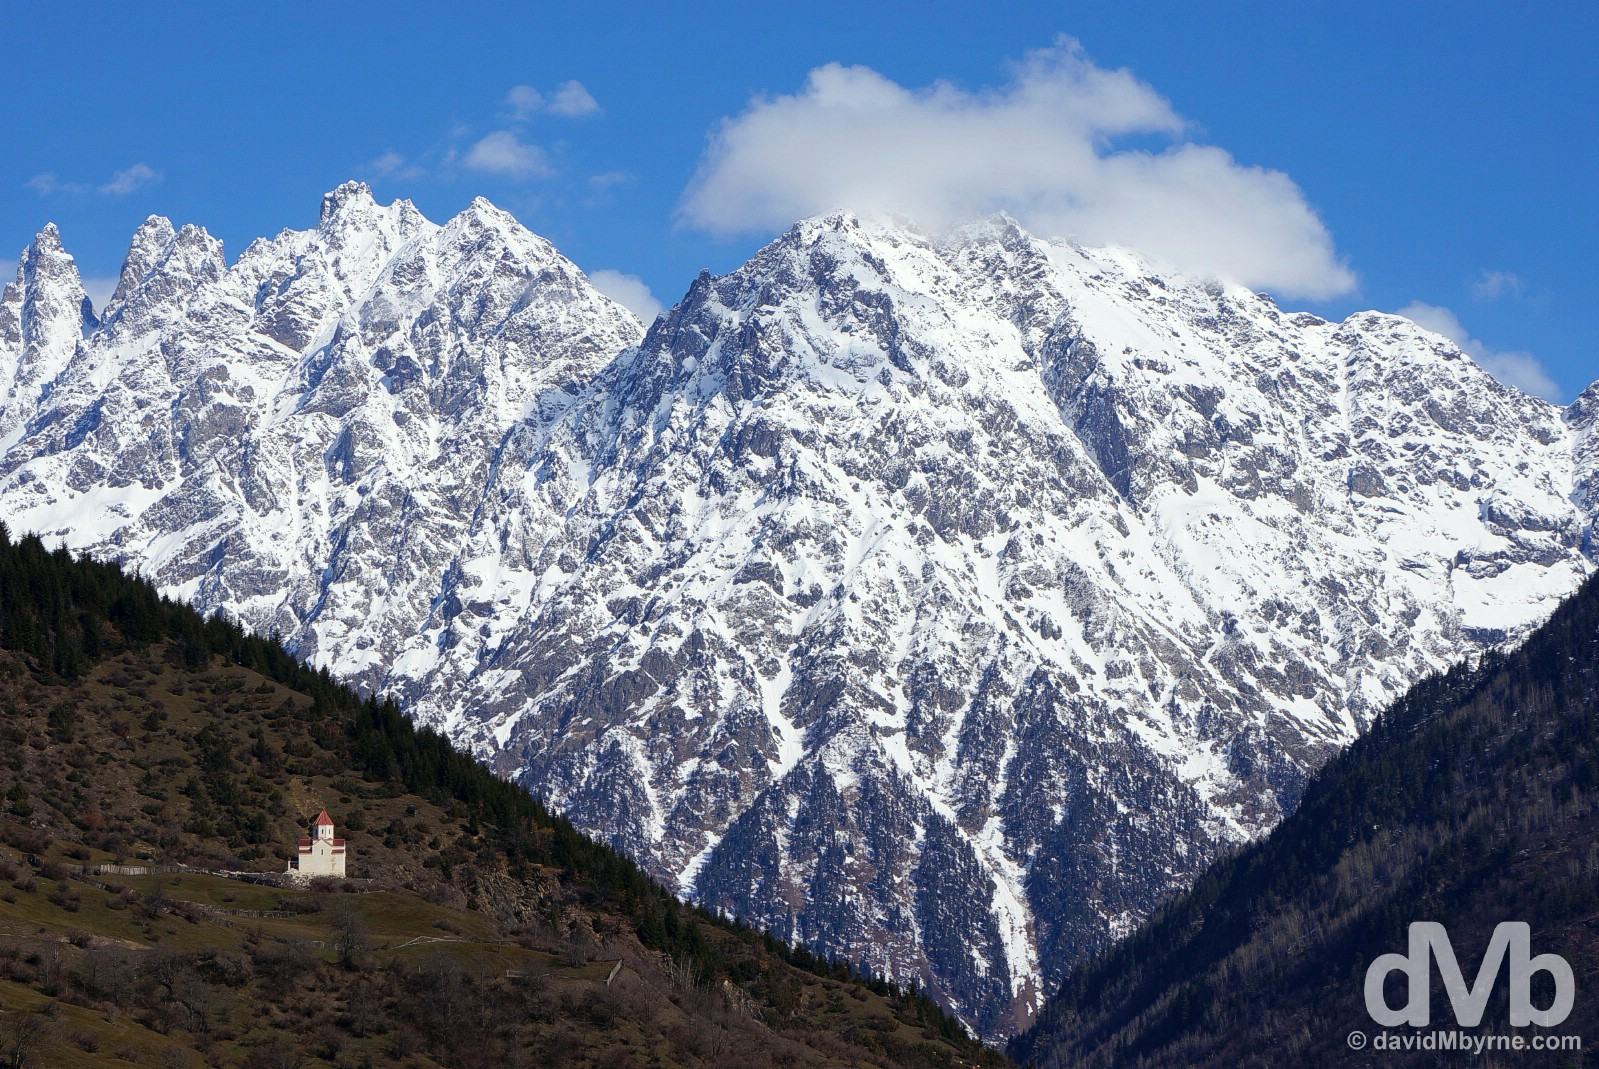 The entrance to the Mestiachala Valley outside the highland town of Mestia in the Caucasus Mountains in northwest Georgia. March 22, 2015.